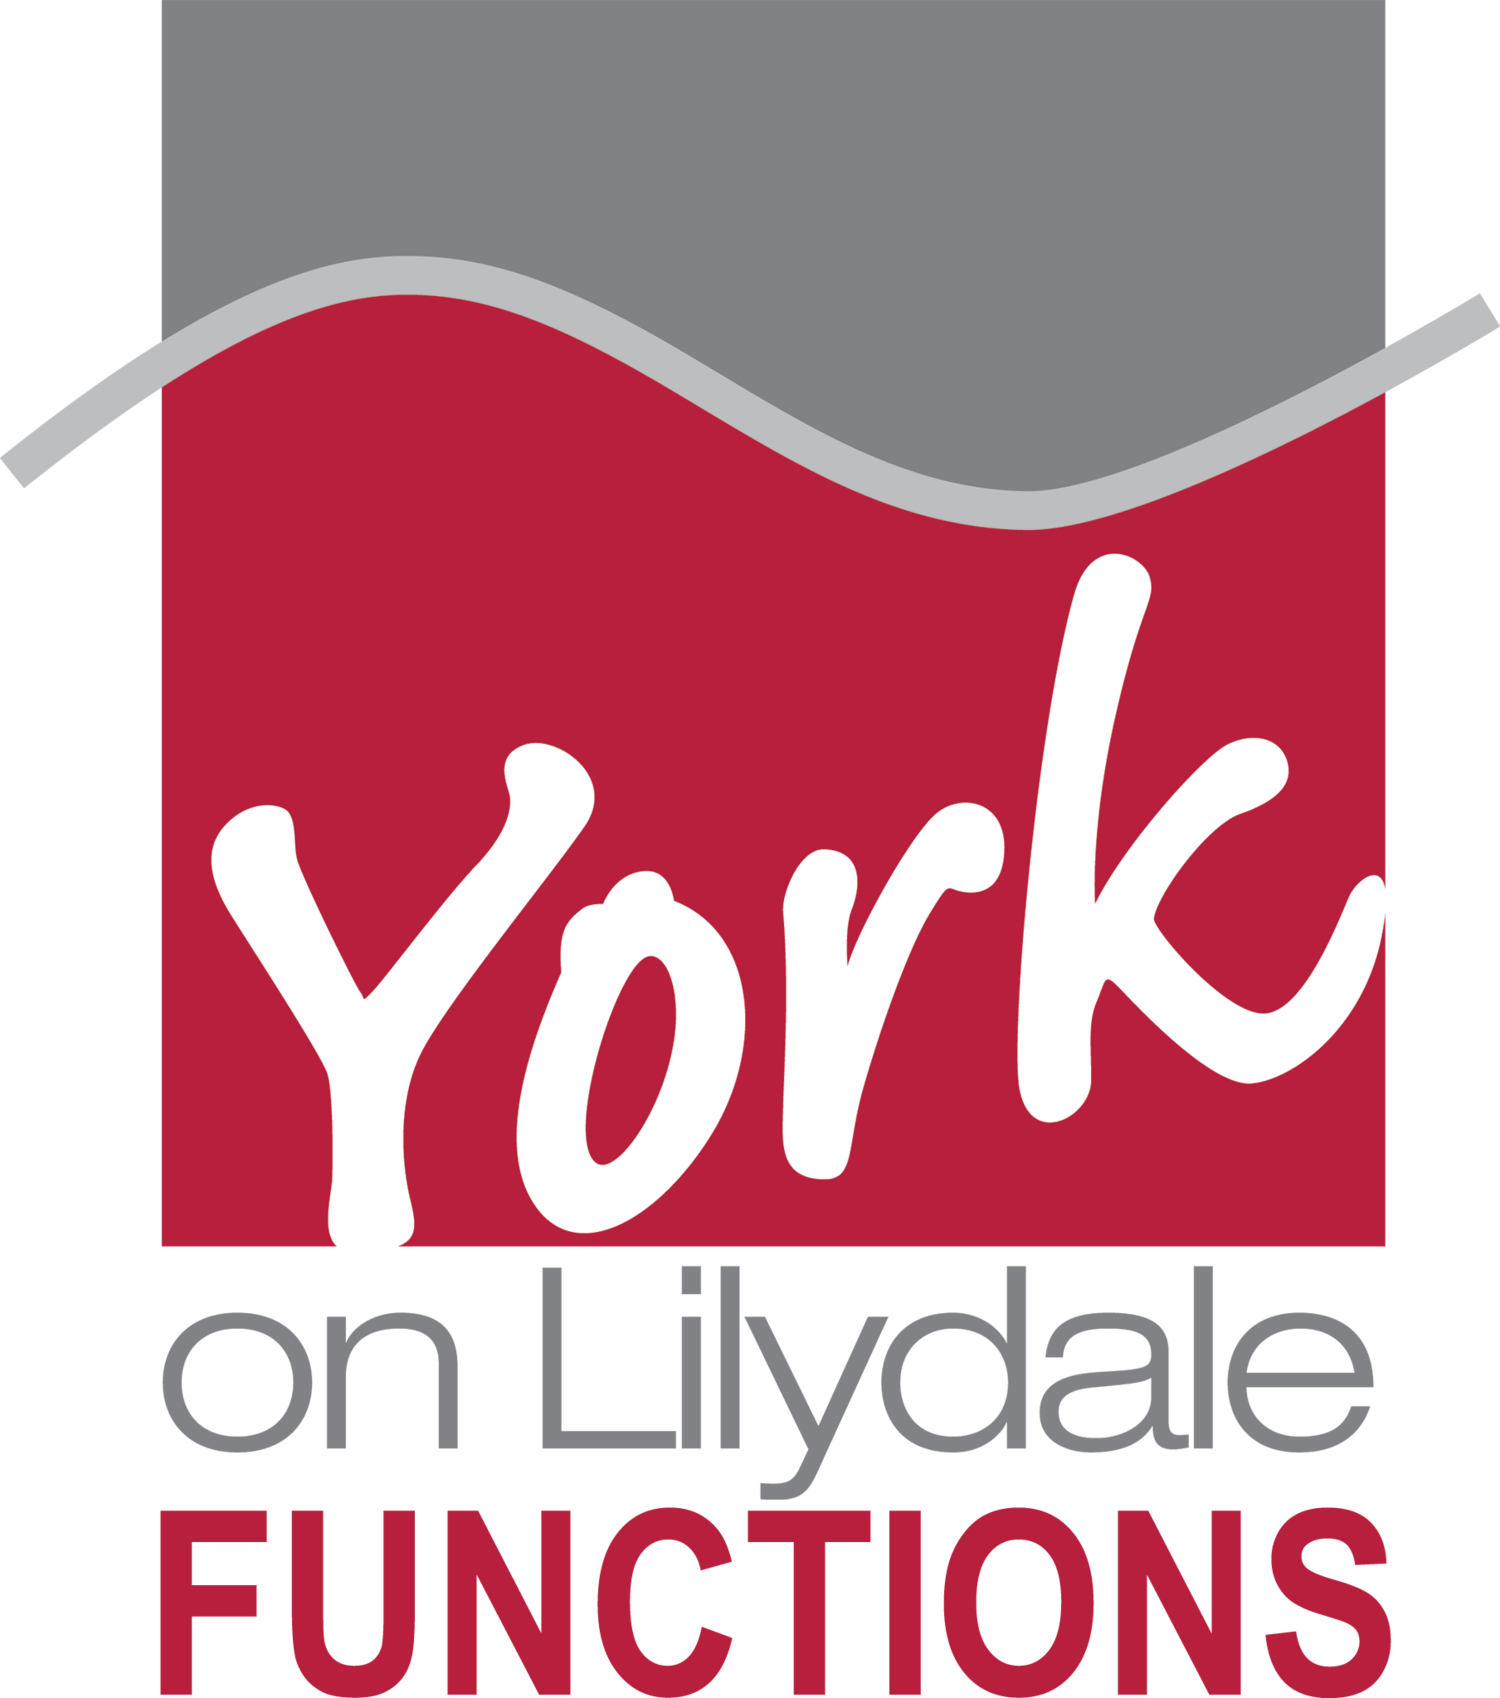 York On Lilydale Functions, Mt Evelyn, VIC